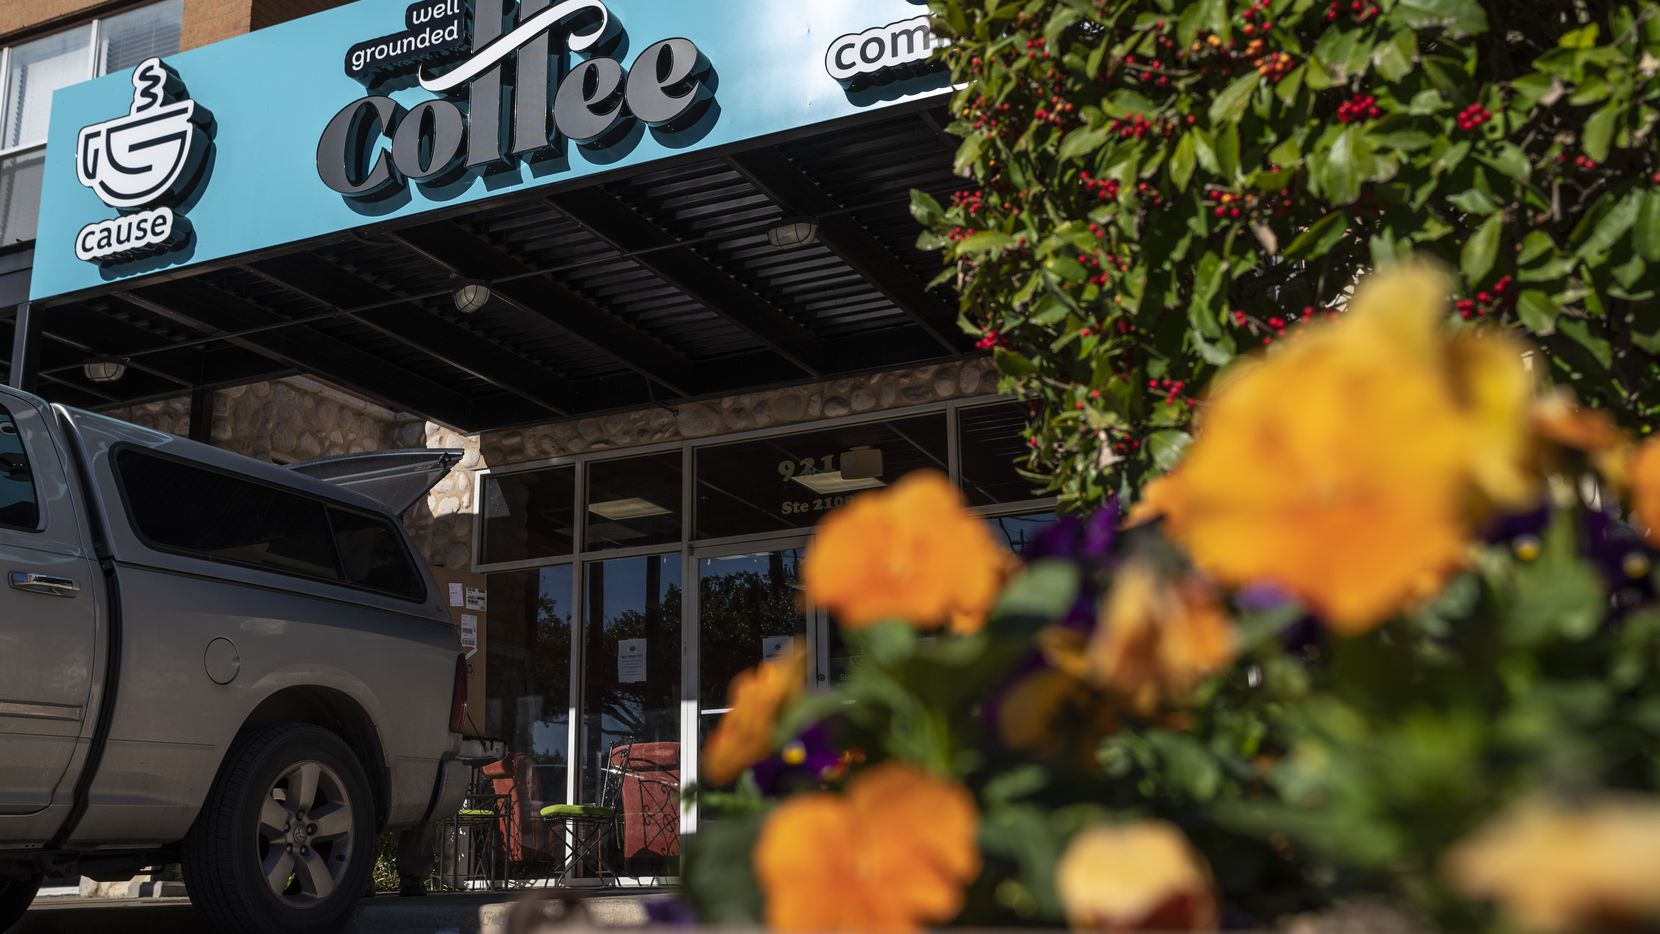 Well Grounded Coffee Community is located at Garland Road and N. Buckner Boulevard in East Dallas.